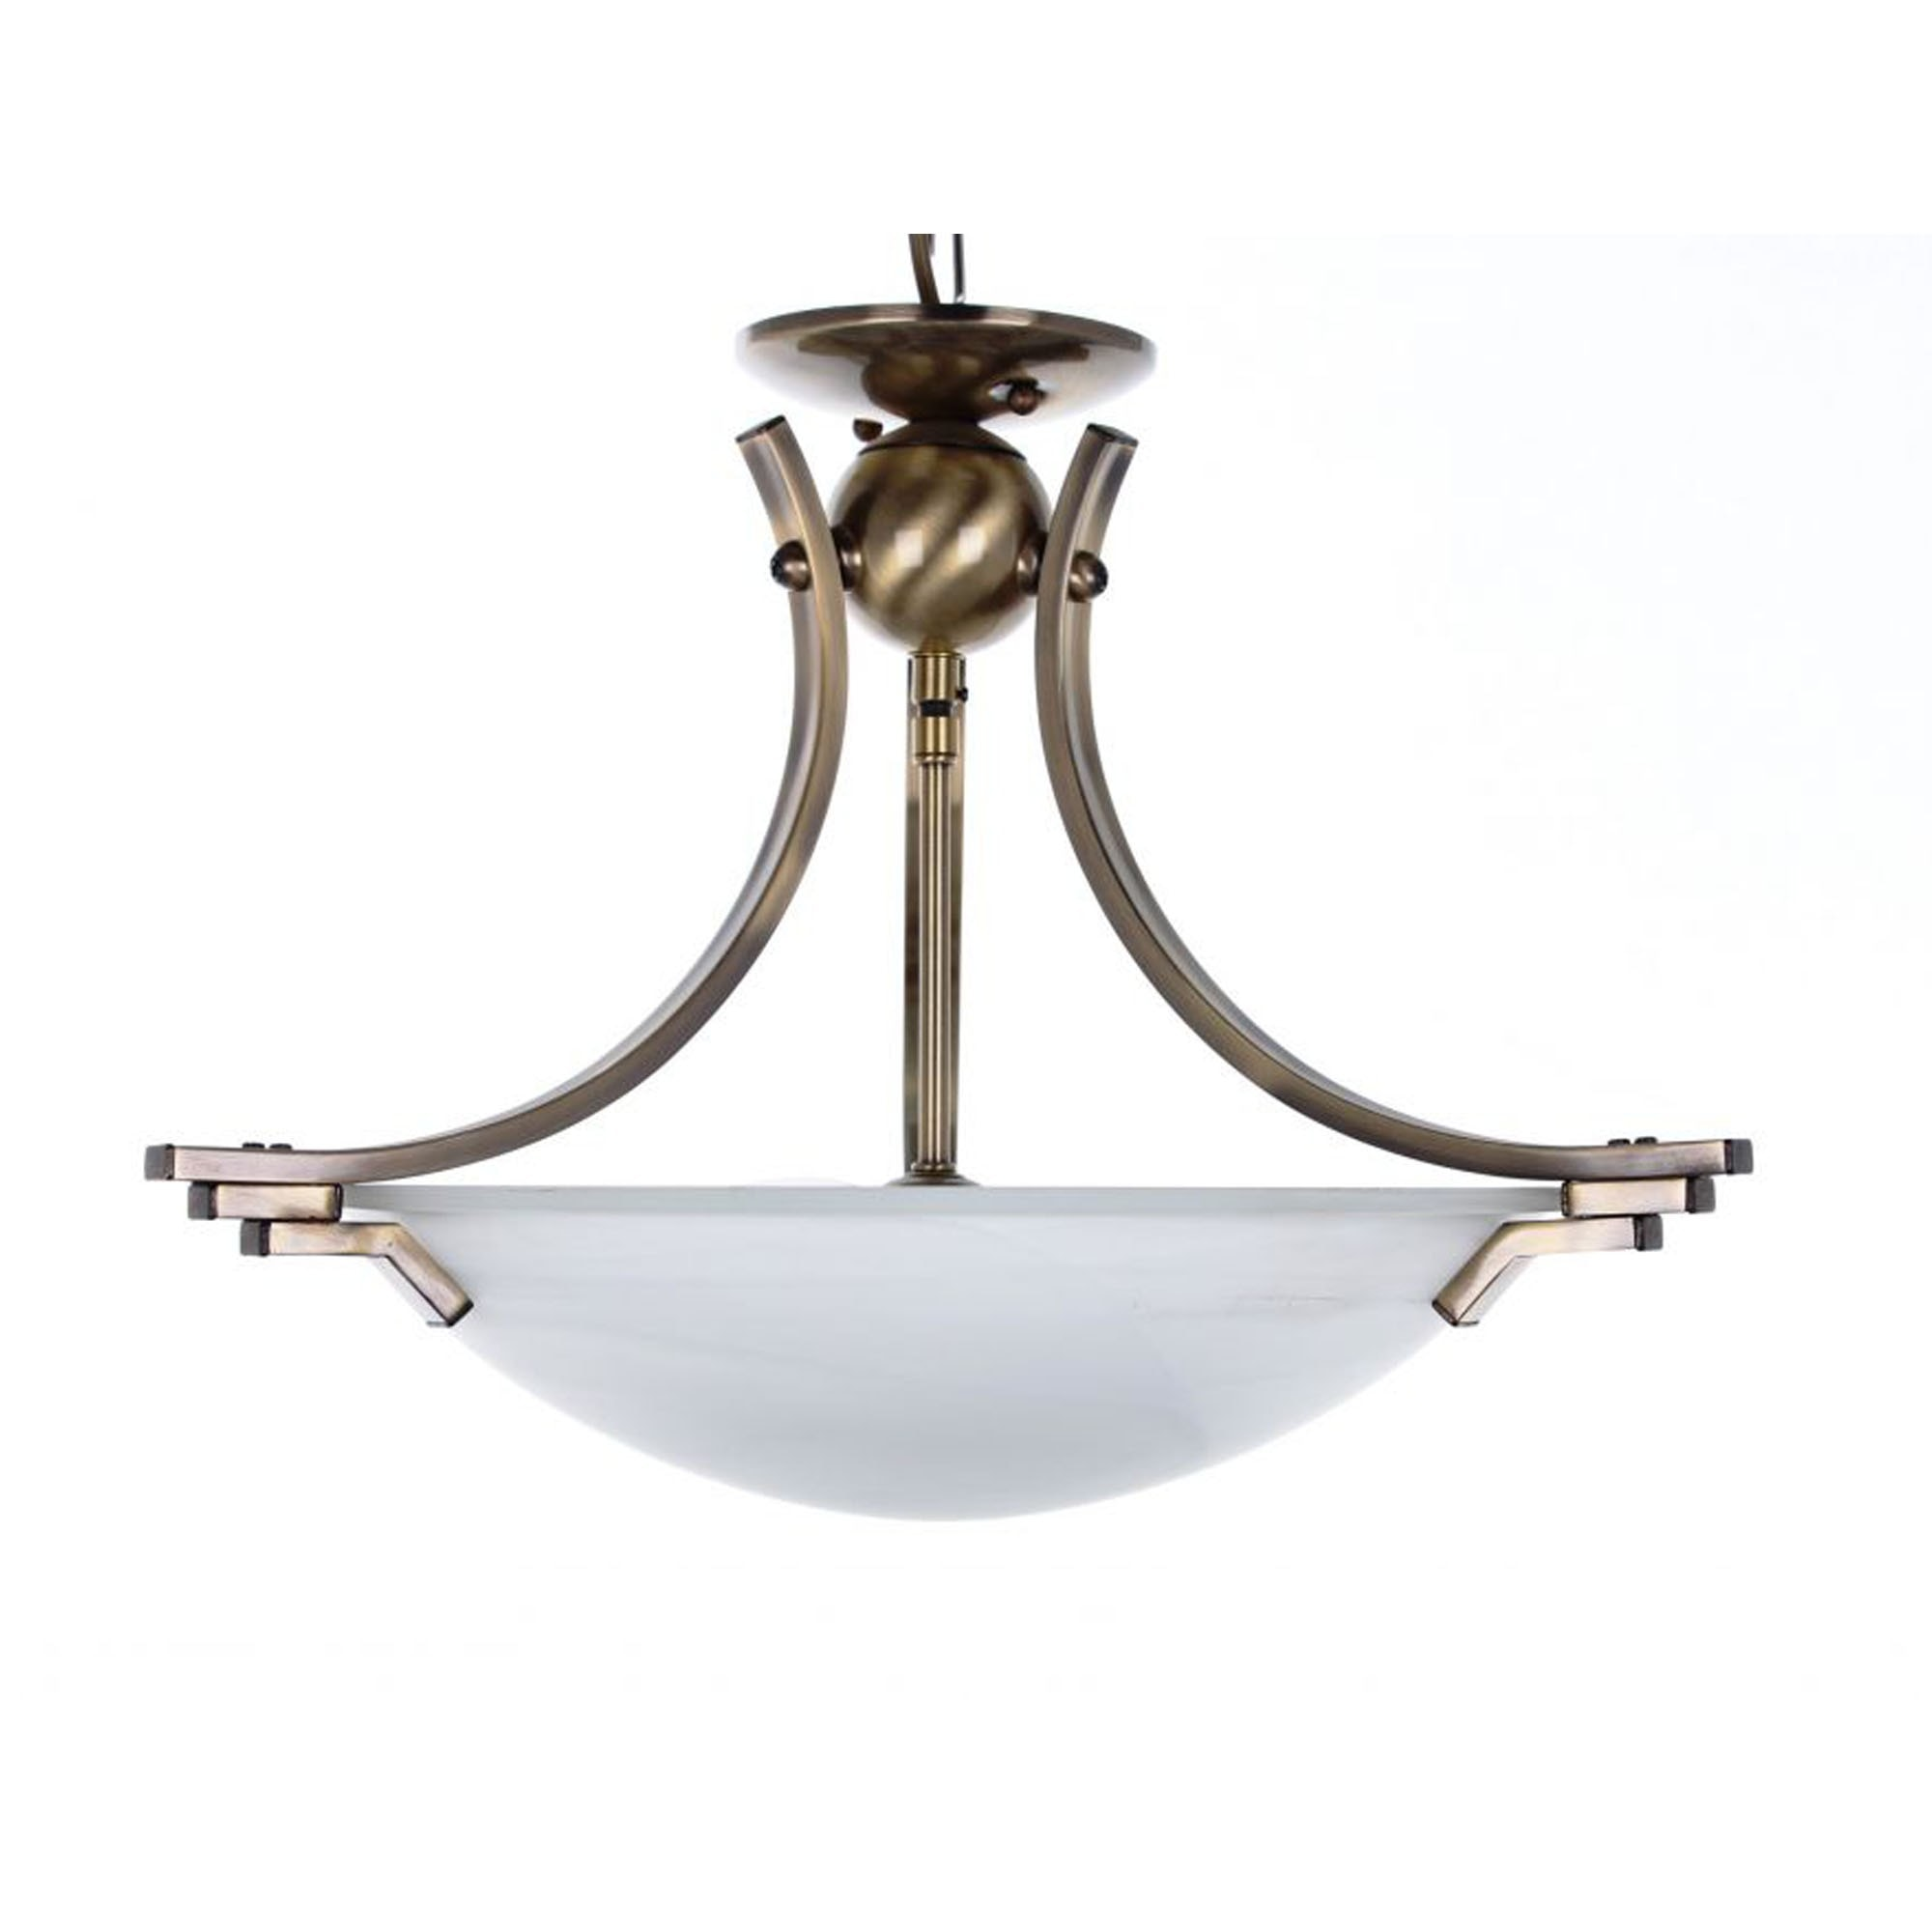 Antique French Style Amora Brass Ceiling Light Ceiling Lights